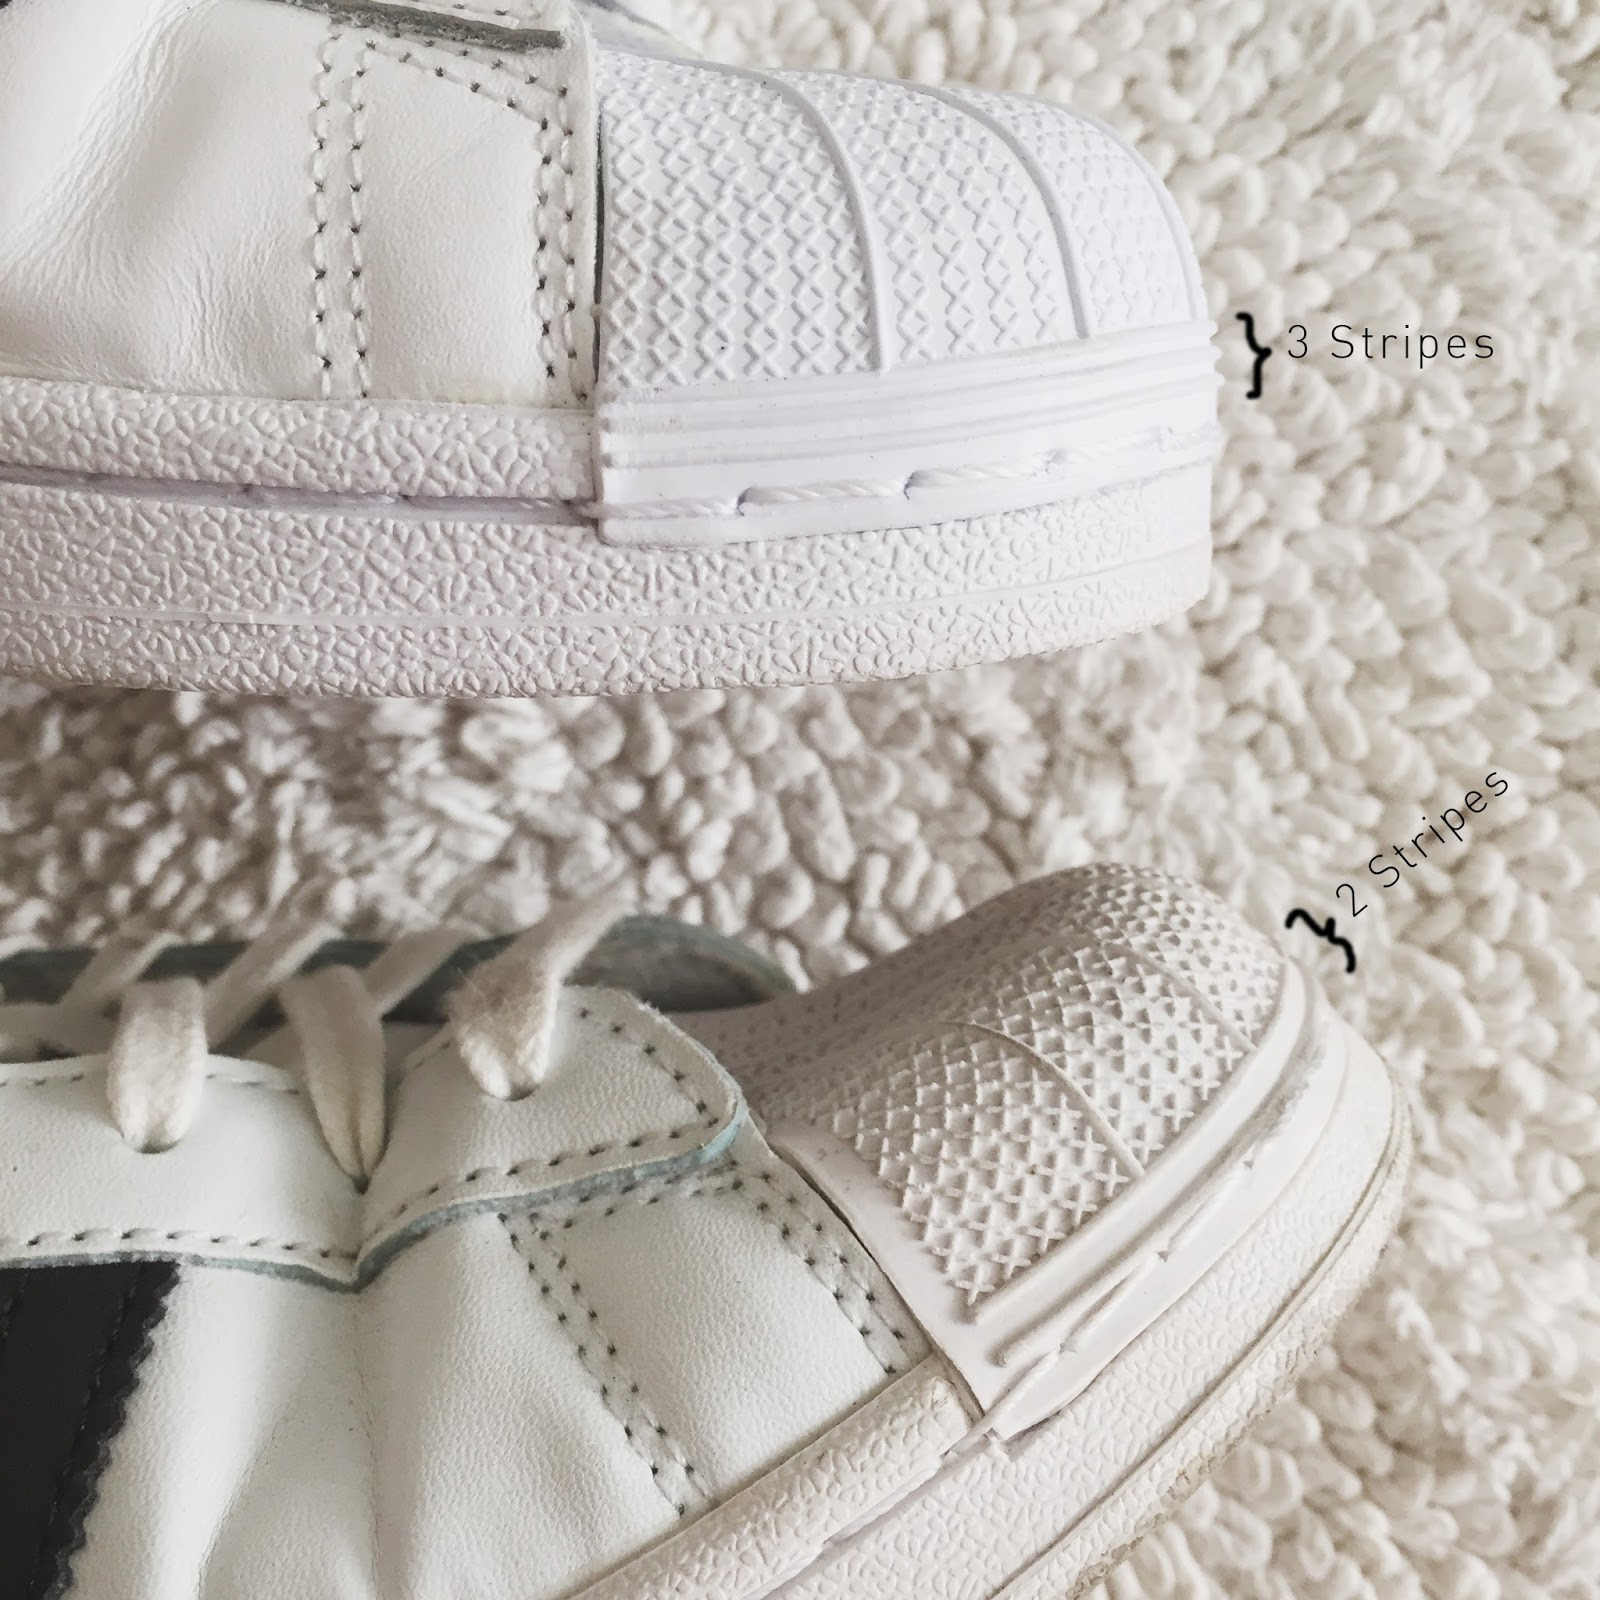 Fake: Two rubber stripes at the base of shell toe, different shape